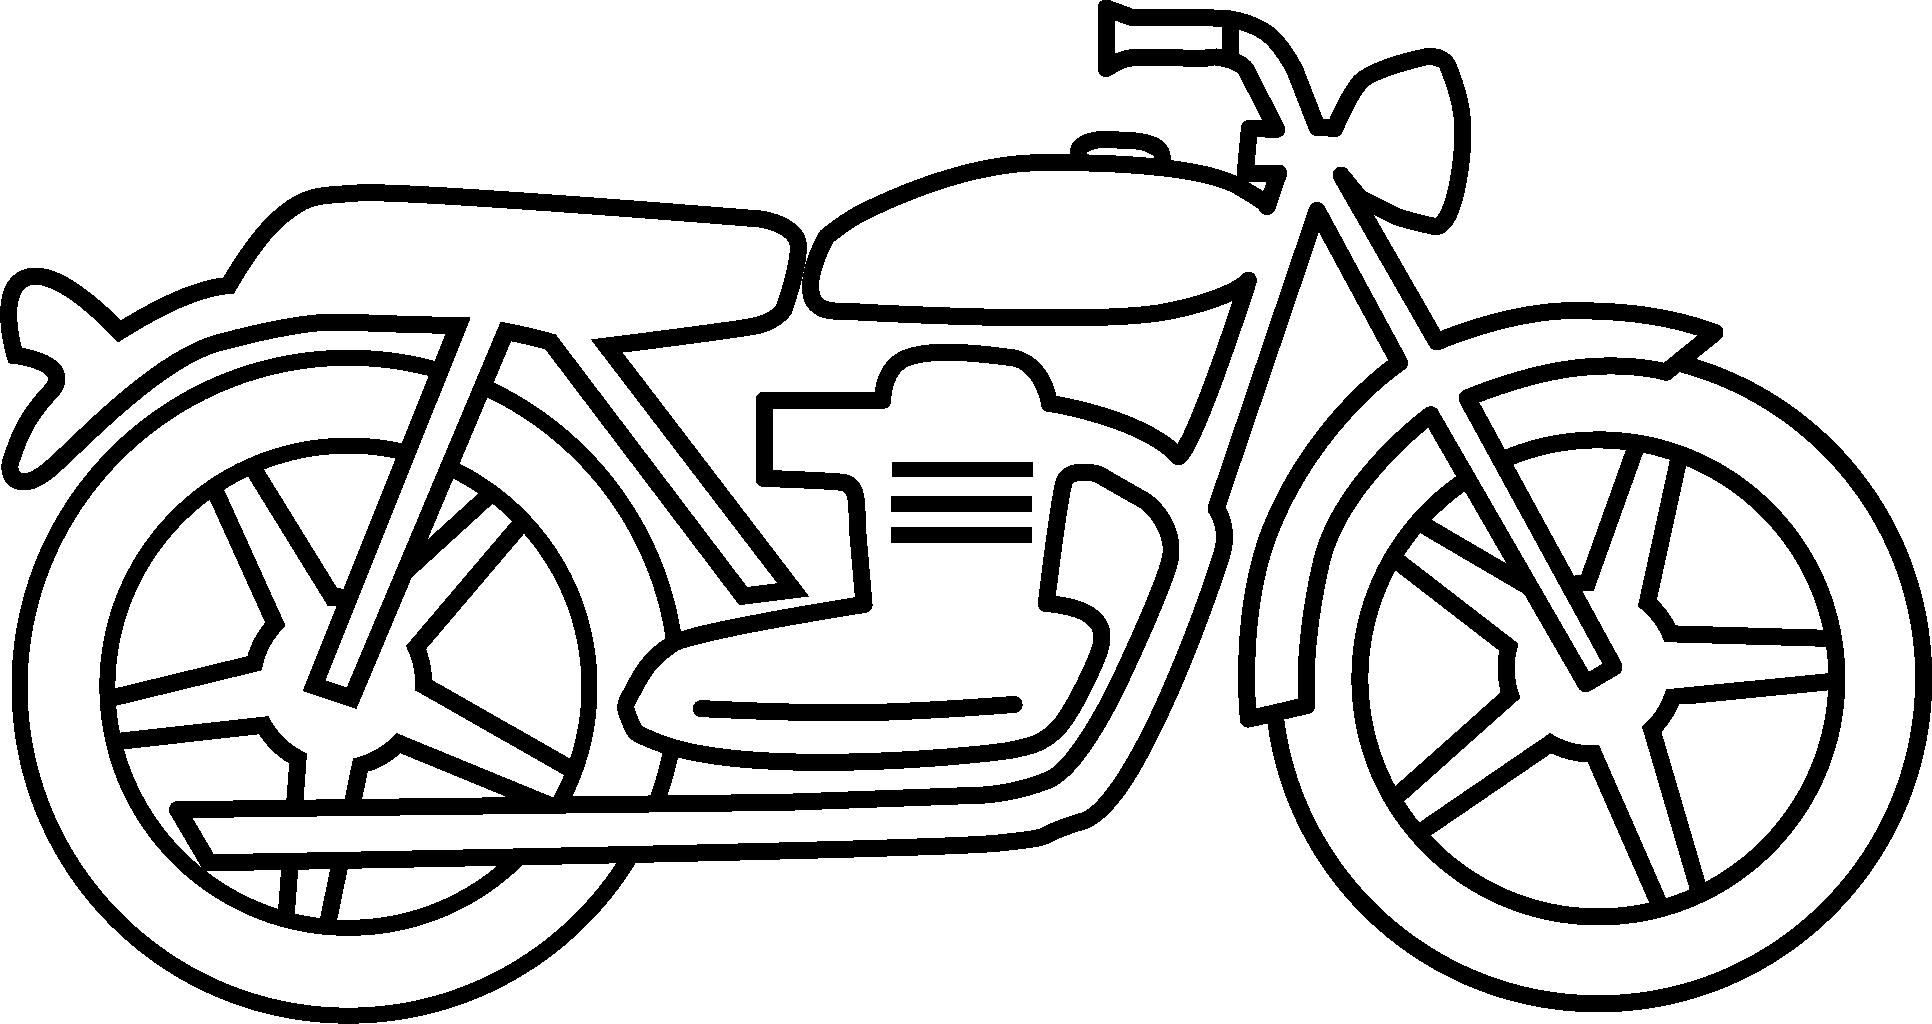 Motorcycle clipart two wheeler. Drawings kid design